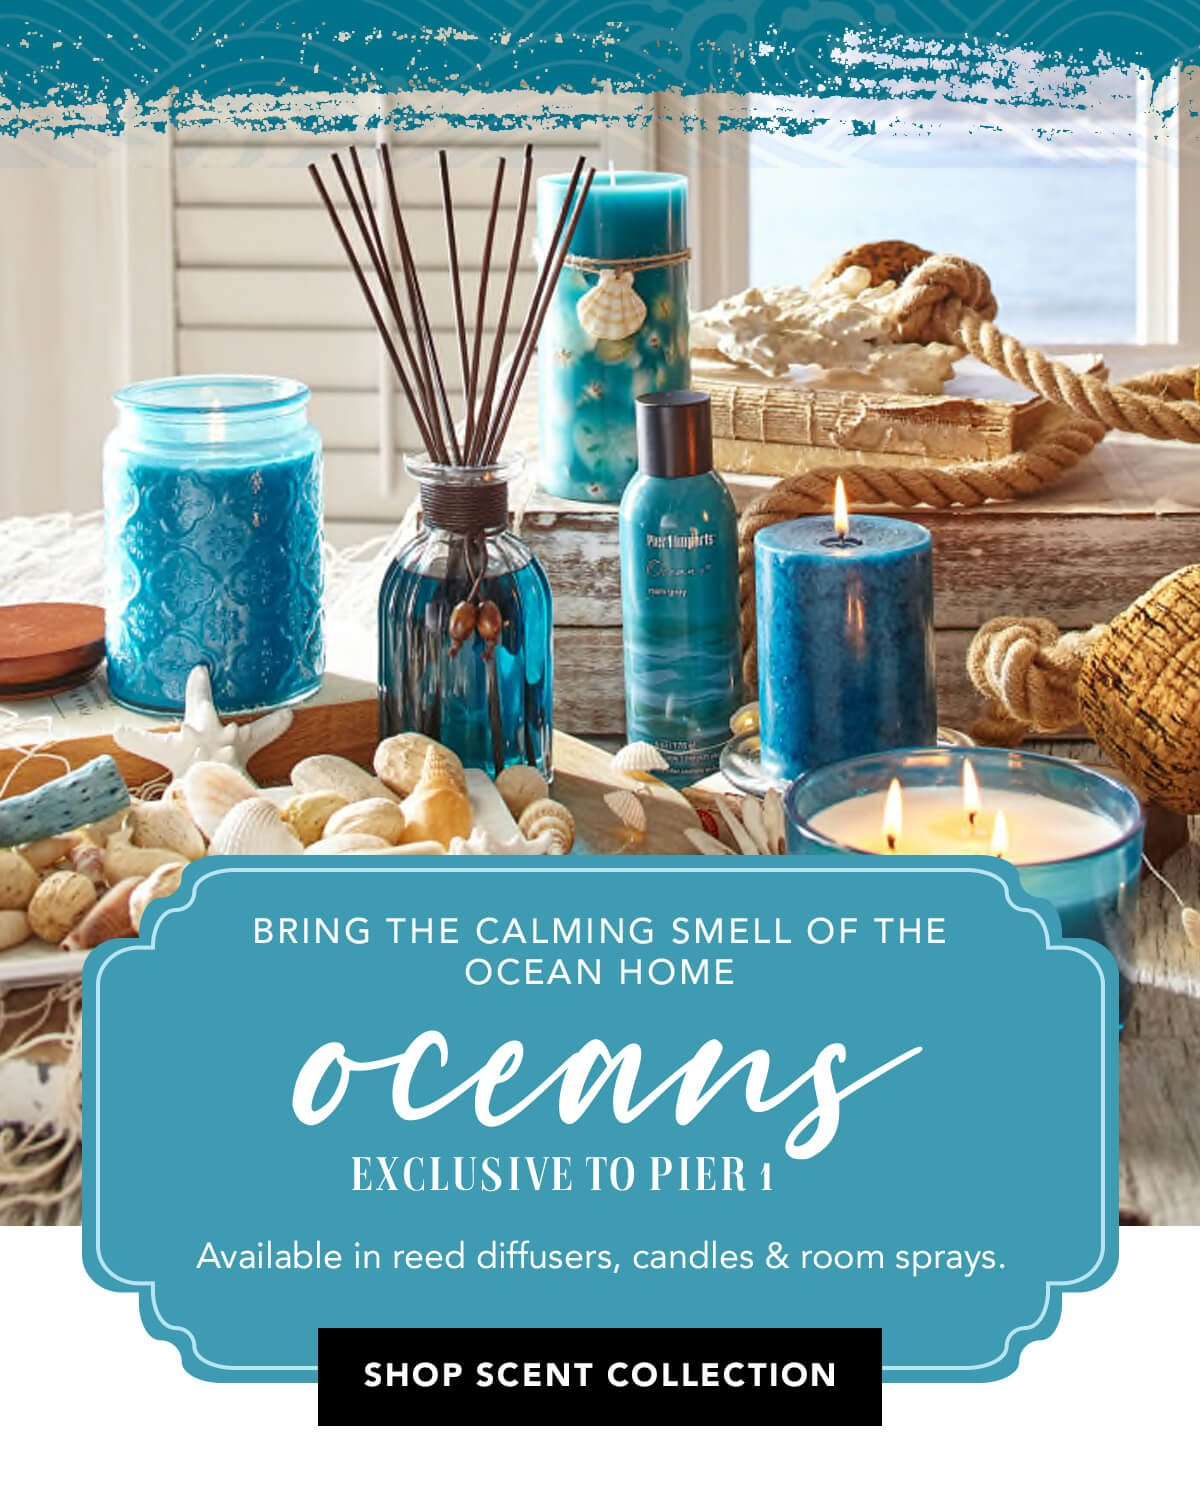 Bring the calming smell of the ocean home. Oceans exclusive to pier 1.   SHOP SCENT COLLECTION